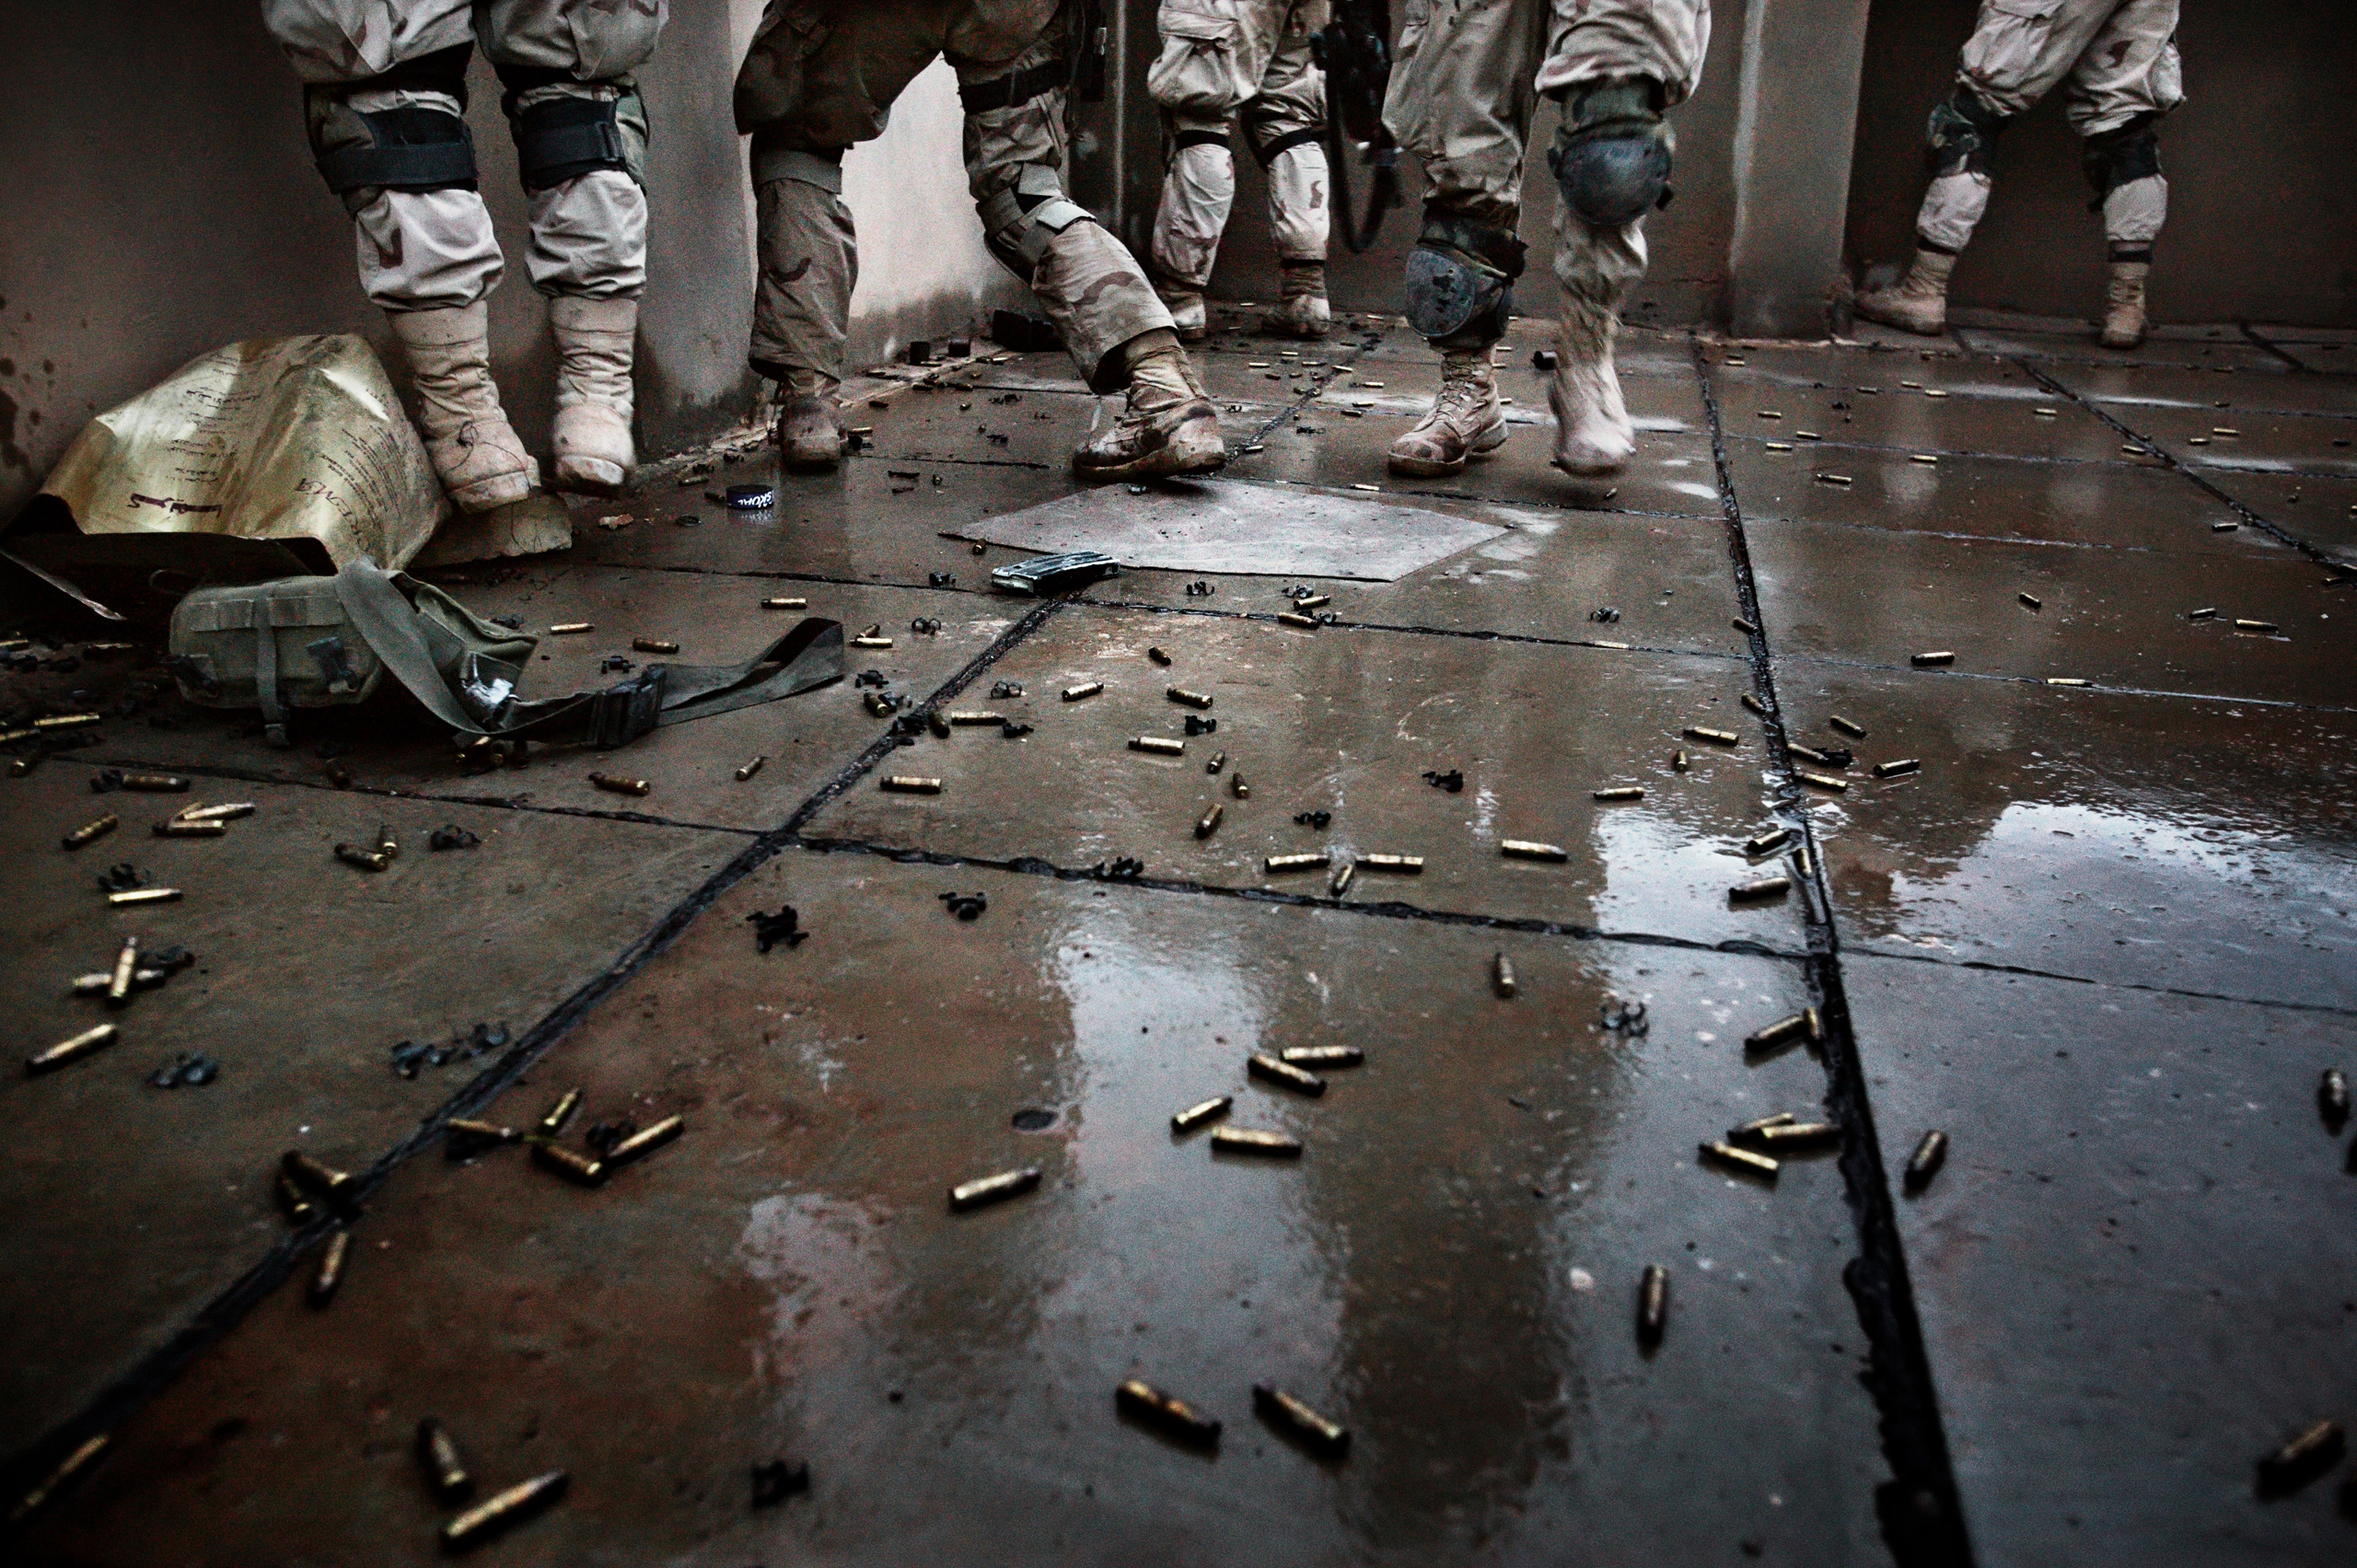 Shell casings line a rooftop where soldiers with the Army Task Force 2-2's Alpha Company, 3rd Platoon fight insurgents  during  a major offensive to clear the city of extremists, Fallujah, Nov. 9, 2004.